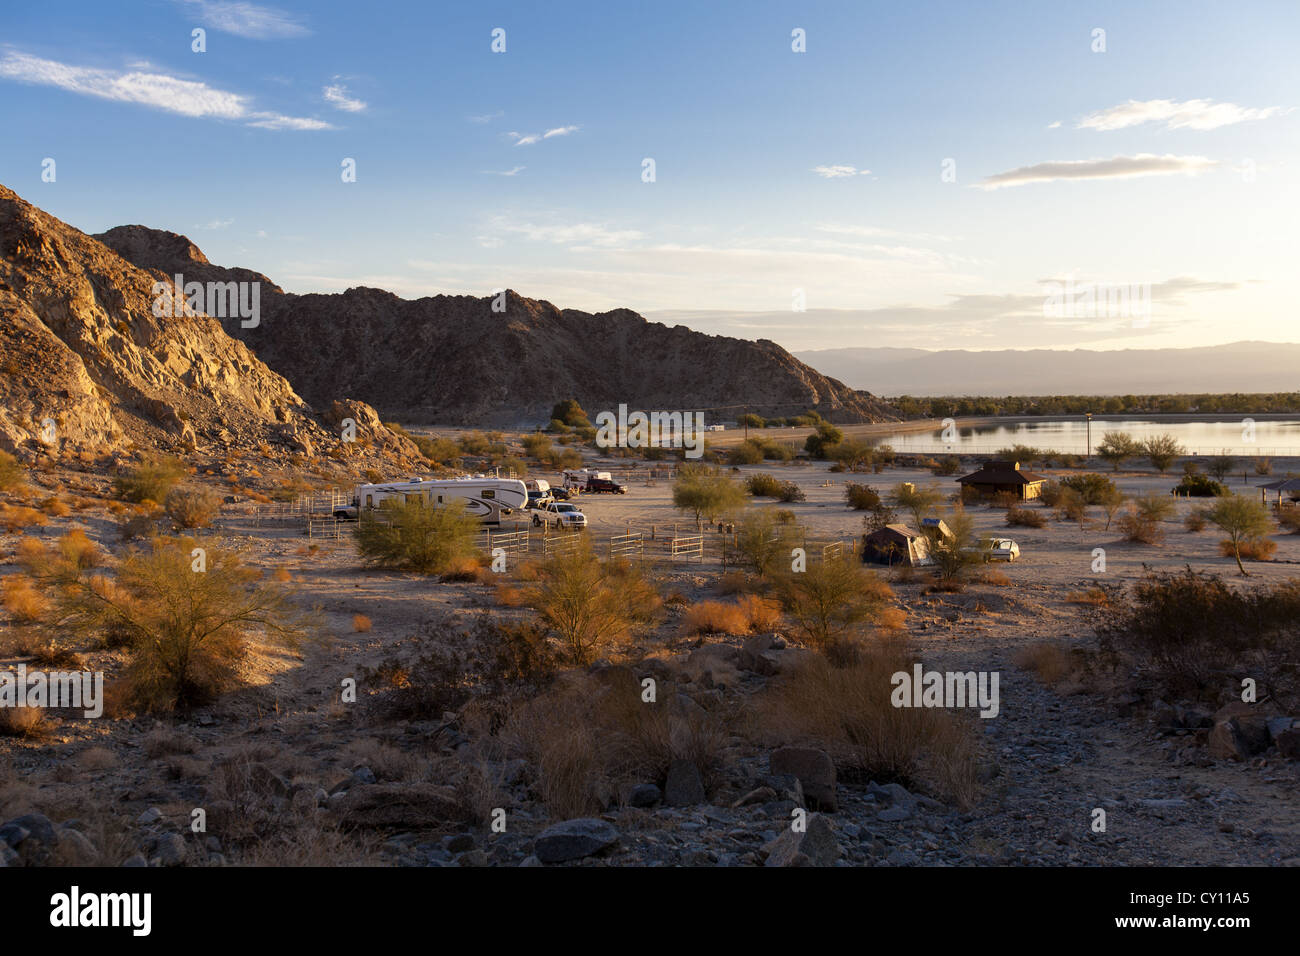 Camp Site Rv Stock Photos Amp Camp Site Rv Stock Images Alamy